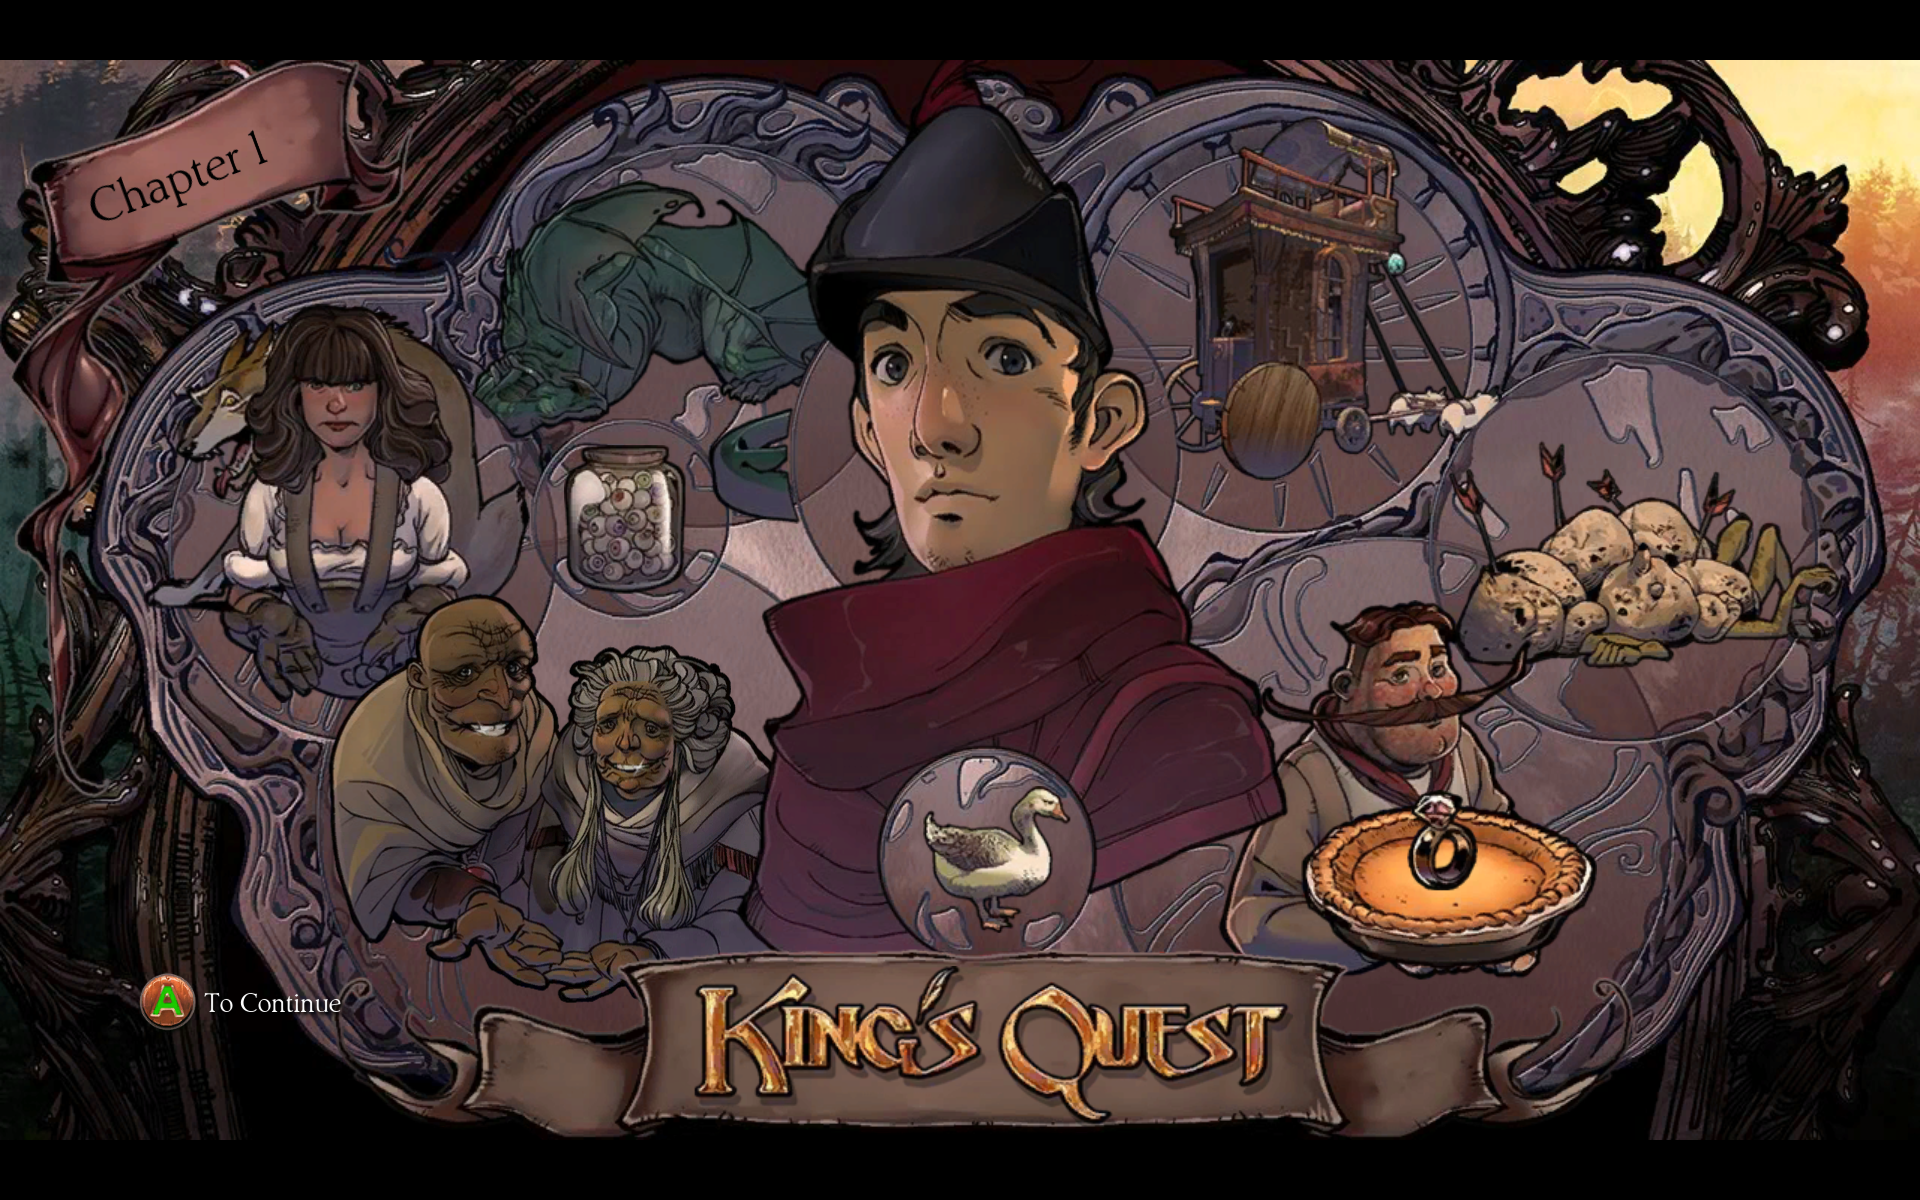 KingsQuest-2015-08-04-16-43-02-75